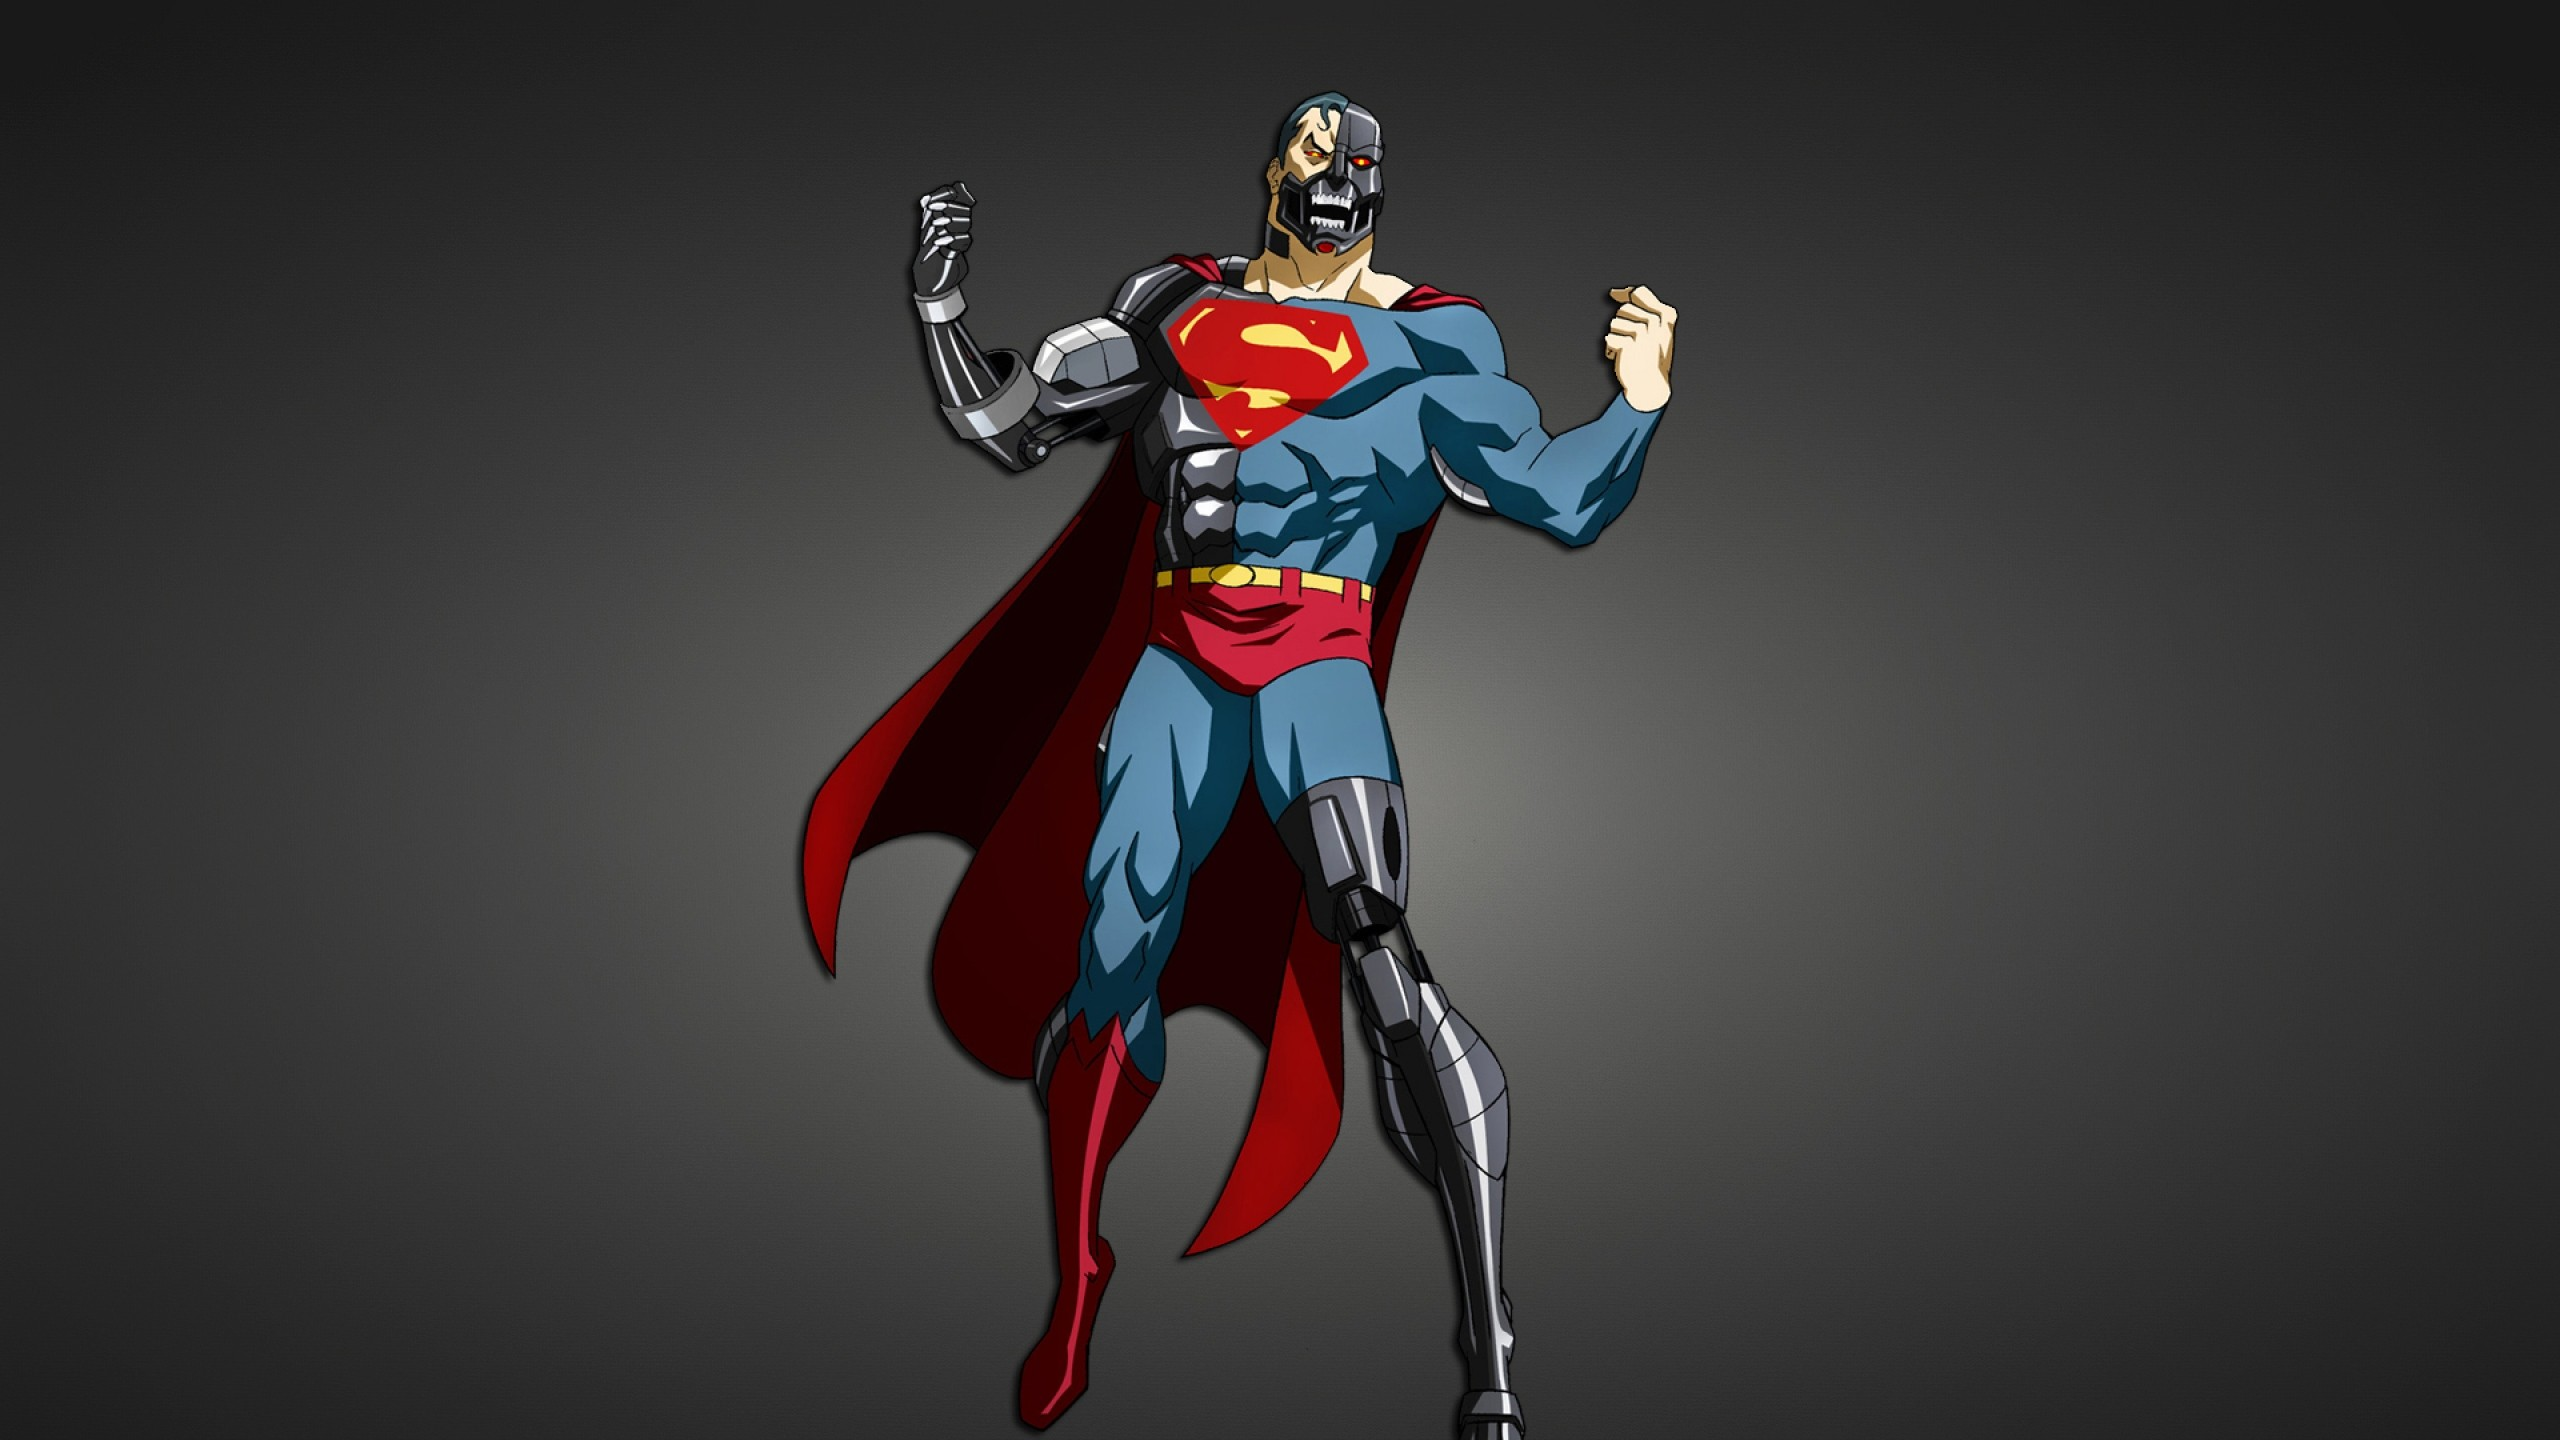 2560x1440 Preview wallpaper superman, superhero, cyborg